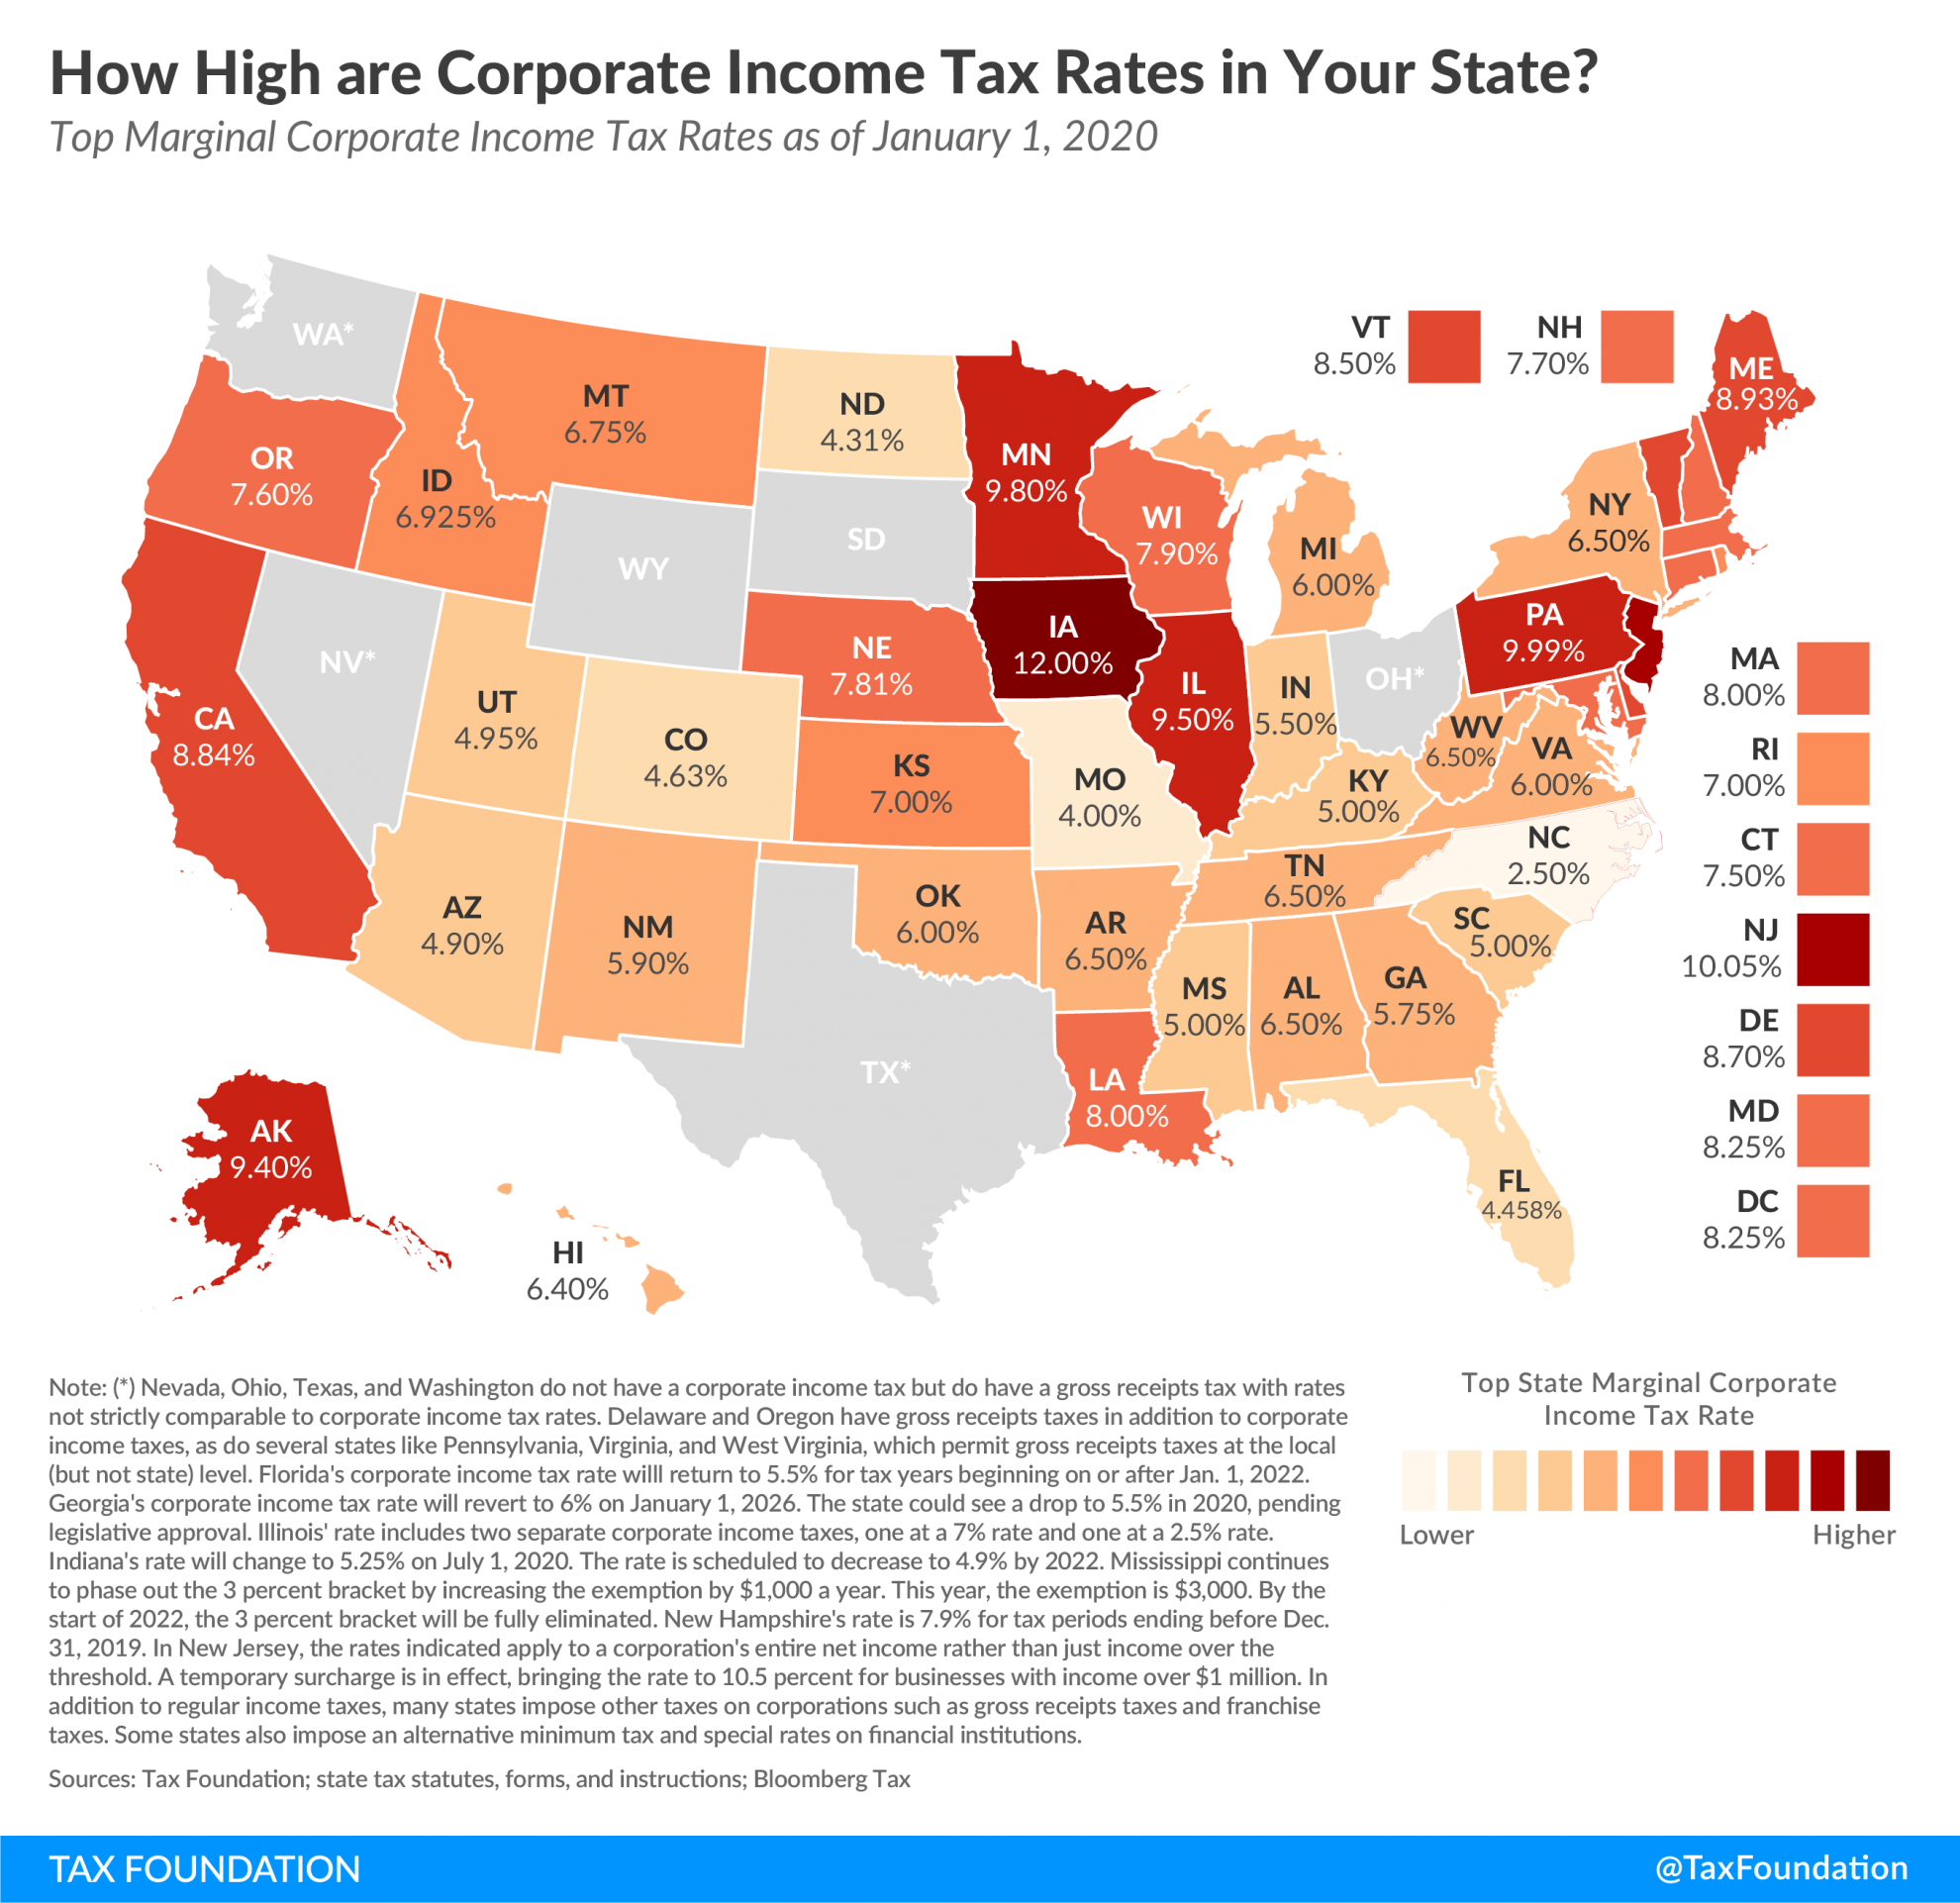 Top marginal corporate income tax rates as of January 1, 2020. 2020 state corporate income tax rates, 2020 state corporate tax rates